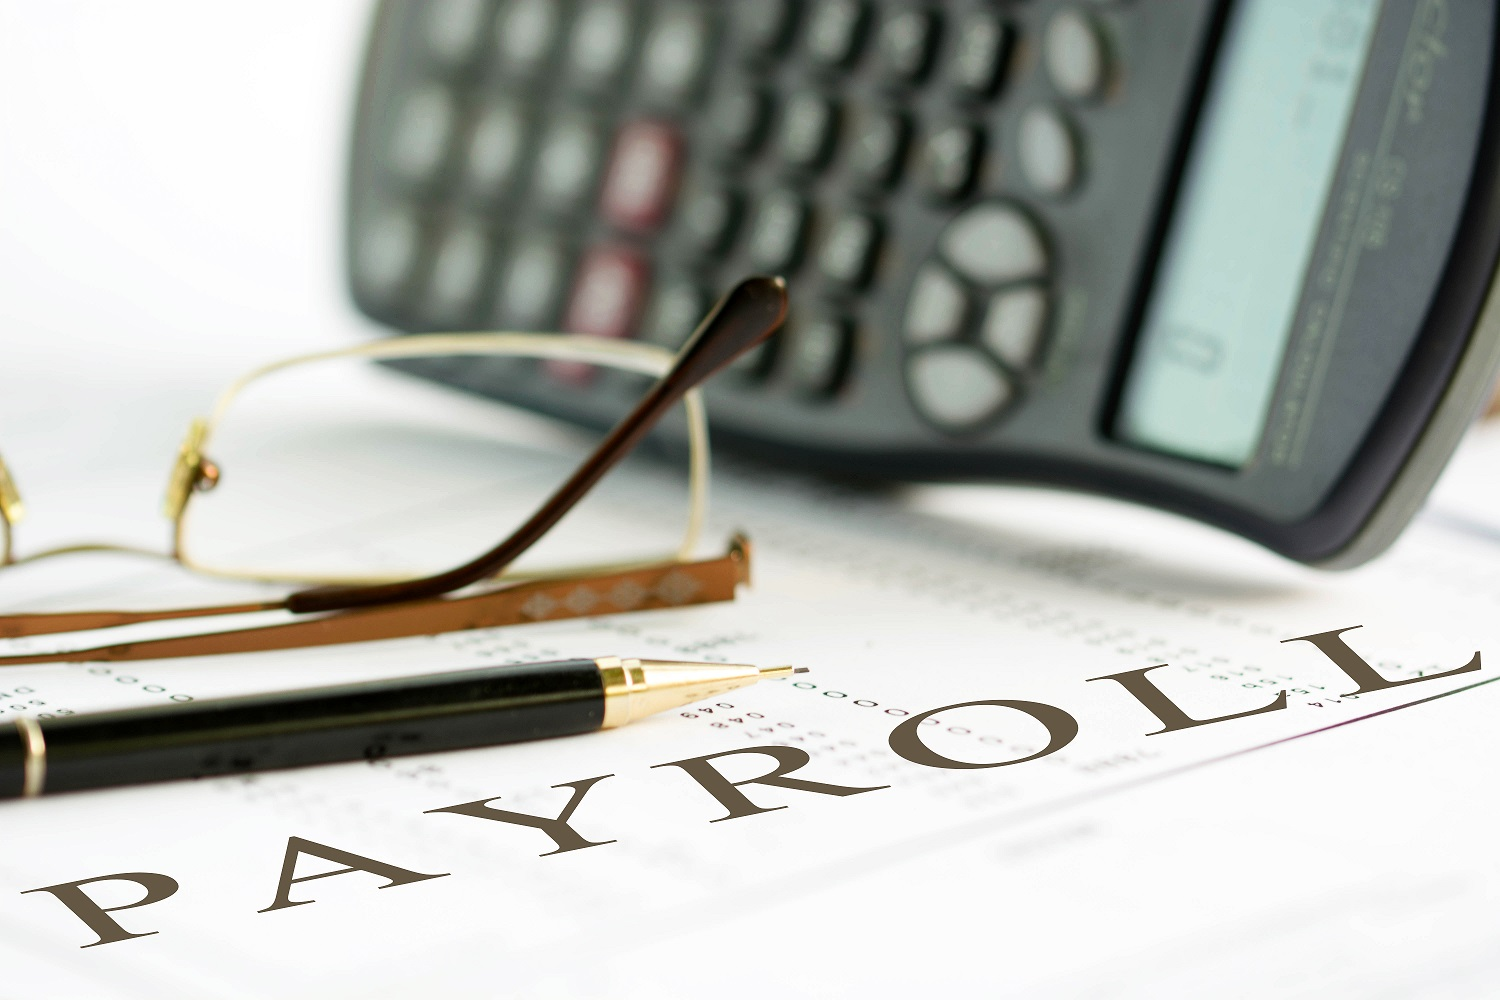 Payroll concept image of a pen, calculator and reading glasses on financial documents.